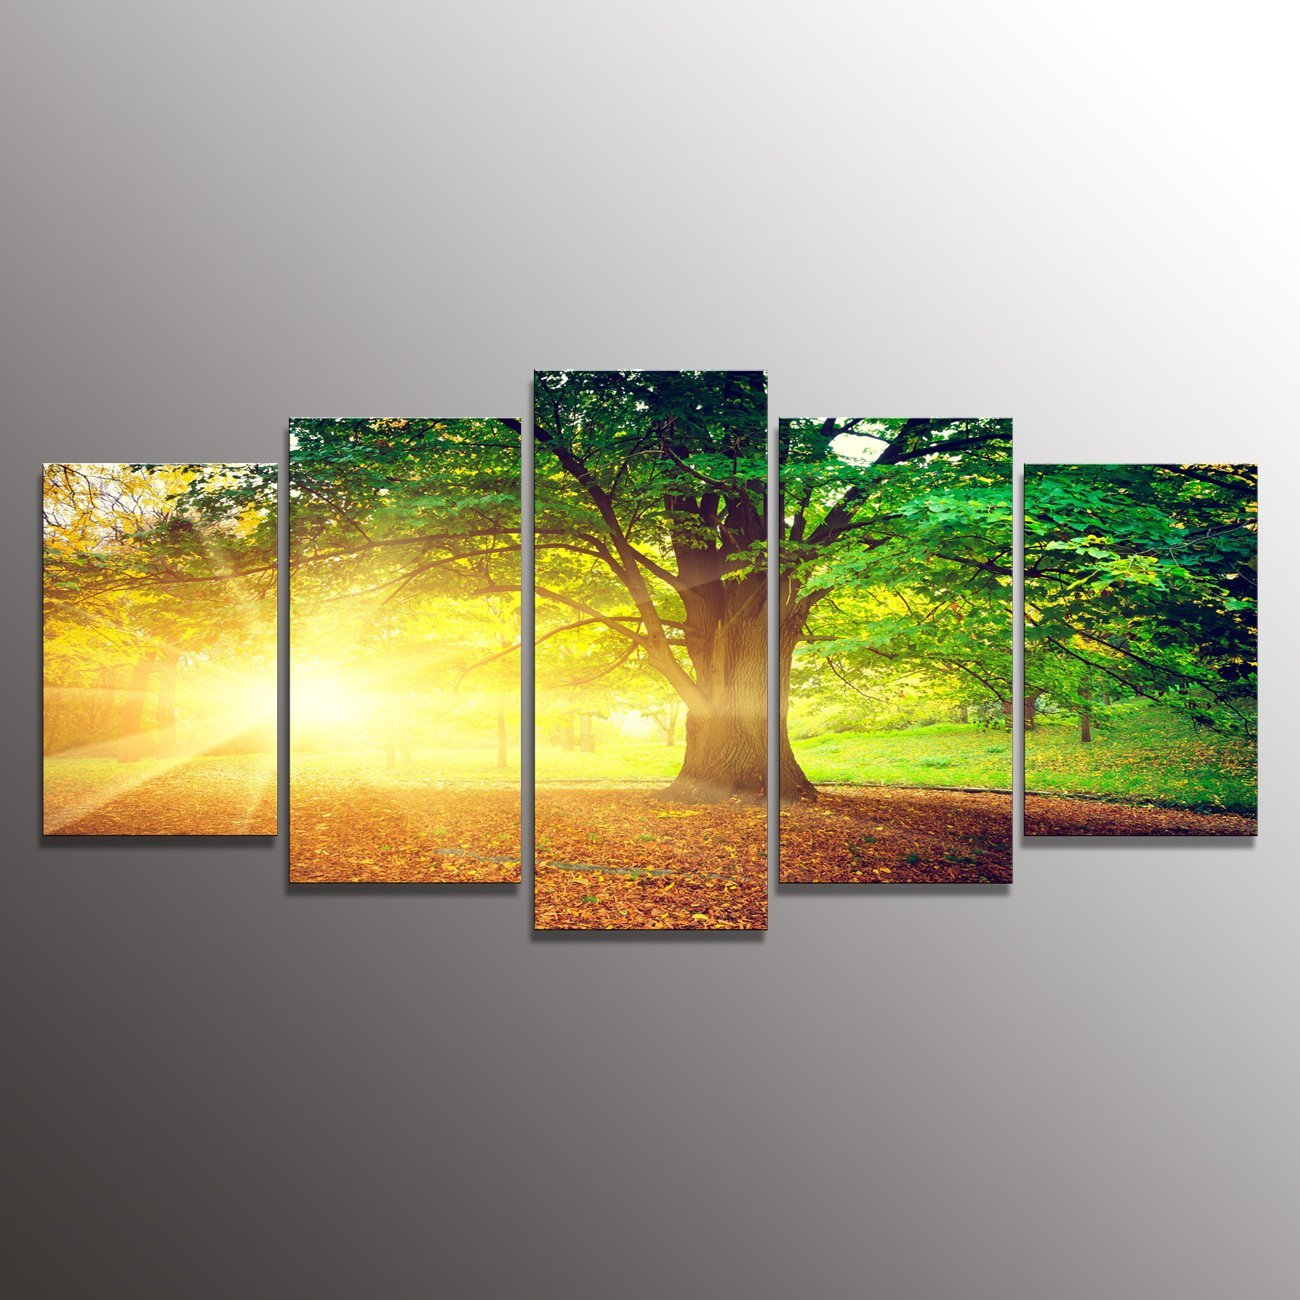 Formarkor Art Kx334 Canvas Print Green Forest Old Trees Sunshine Morning Forest Landscape Print On Canvas Giclee Artwork For Wall Decor Home Decor 5-piece